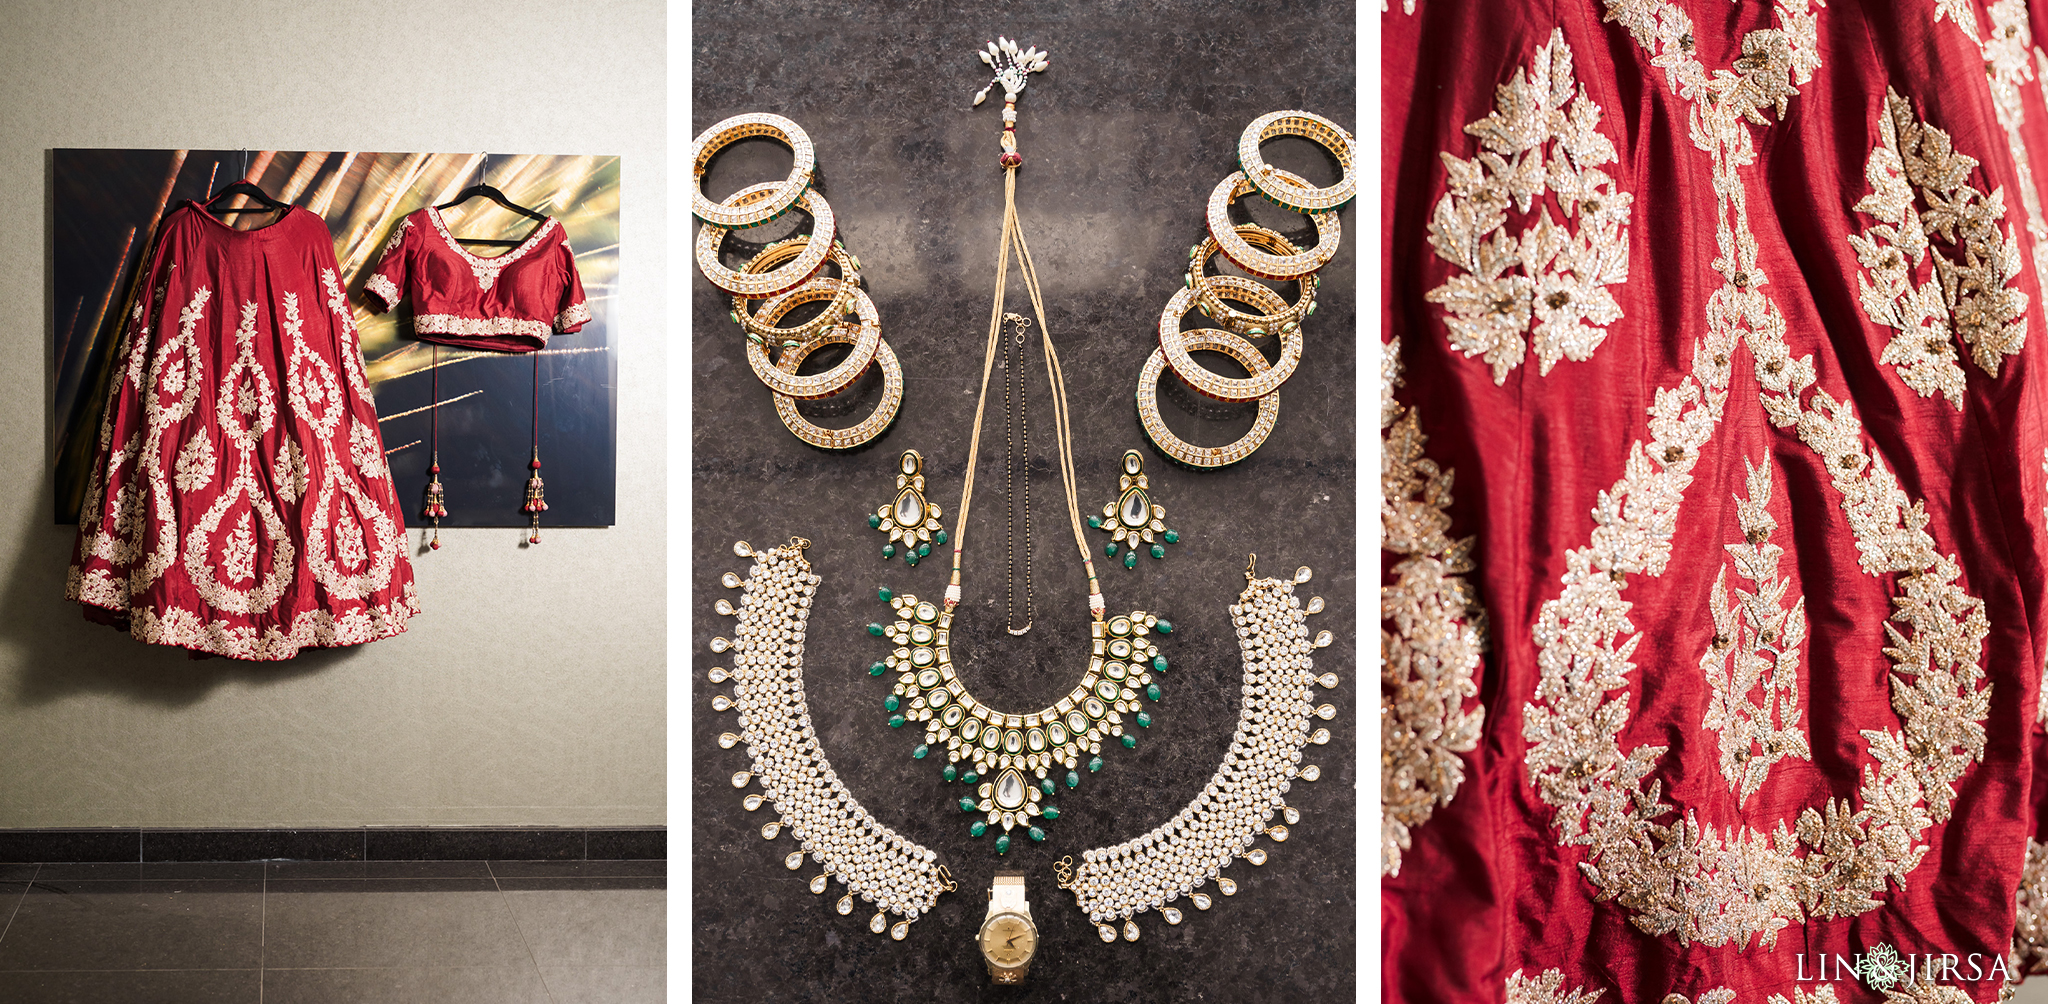 zjg The Ebell Los Angeles Bride Indian Wedding Photography